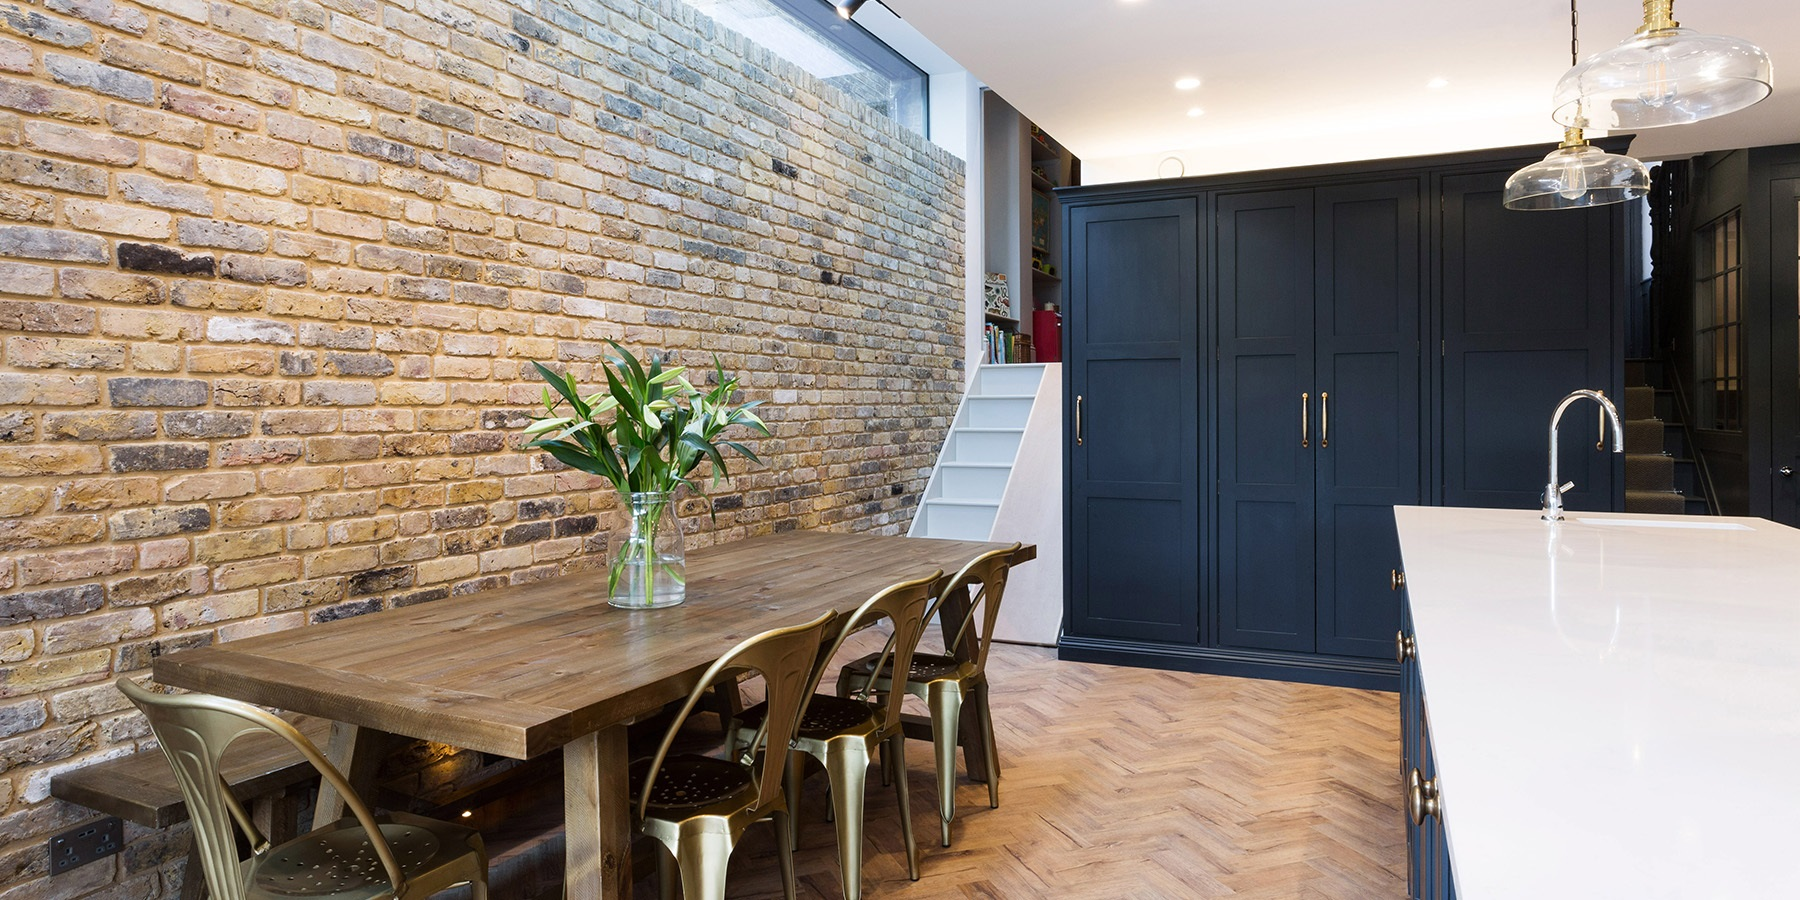 Beautiful Kitchen Extension With Skylights & Authentic Rustic Decor - A South East London townhouse kitchen extension with original brick walls, sky lights and authentic industrial style kitchen and decor.